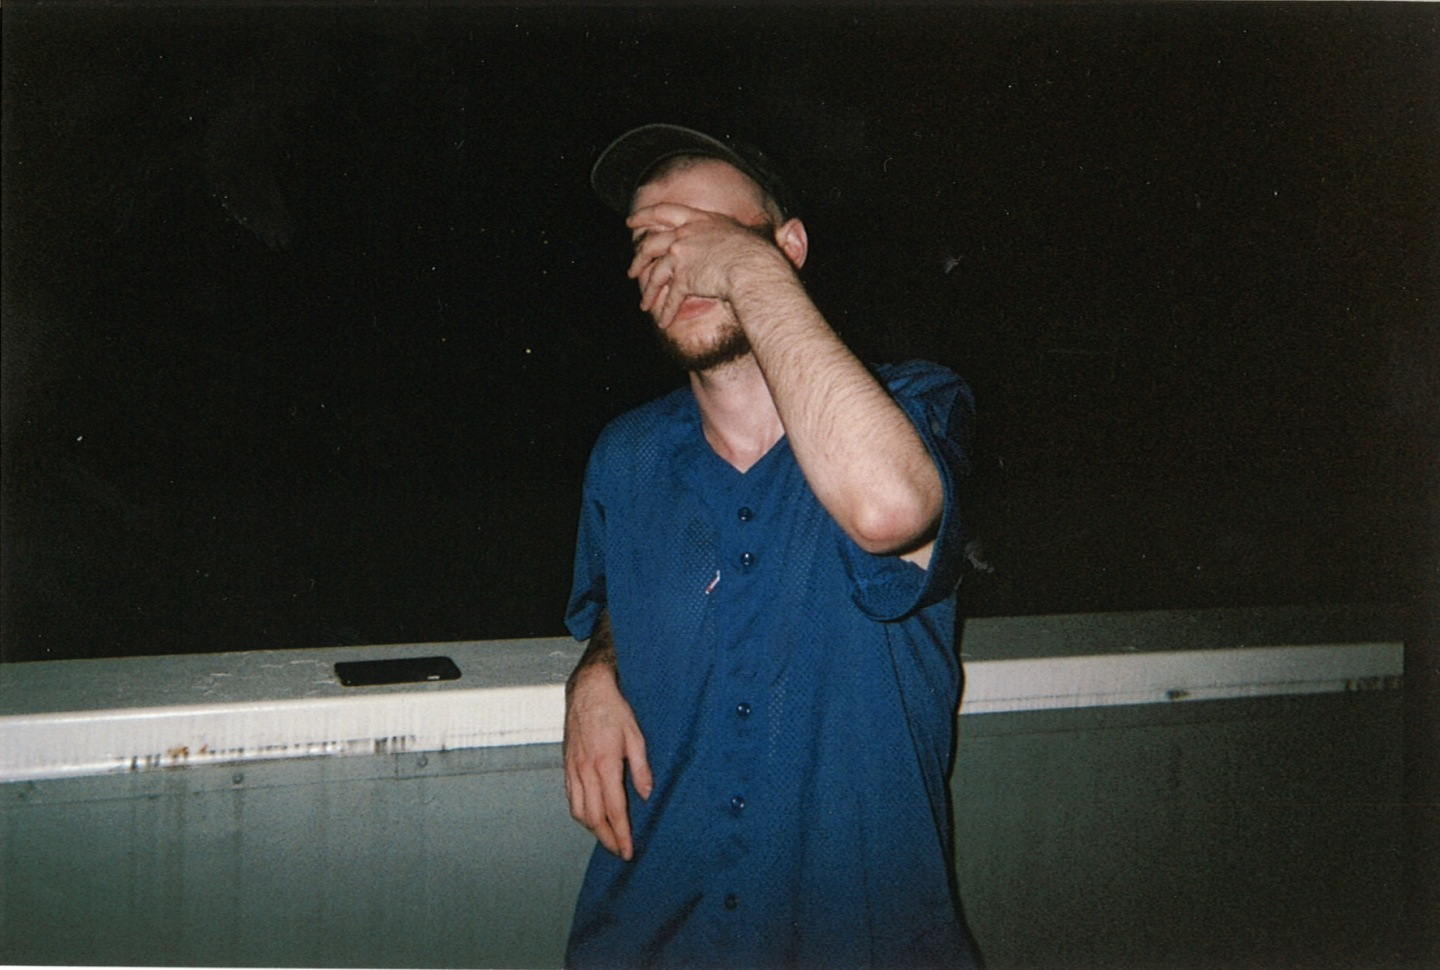 How Nightlife Anxiety Inspired Huerco S. To Make The Perfect Ambient Album